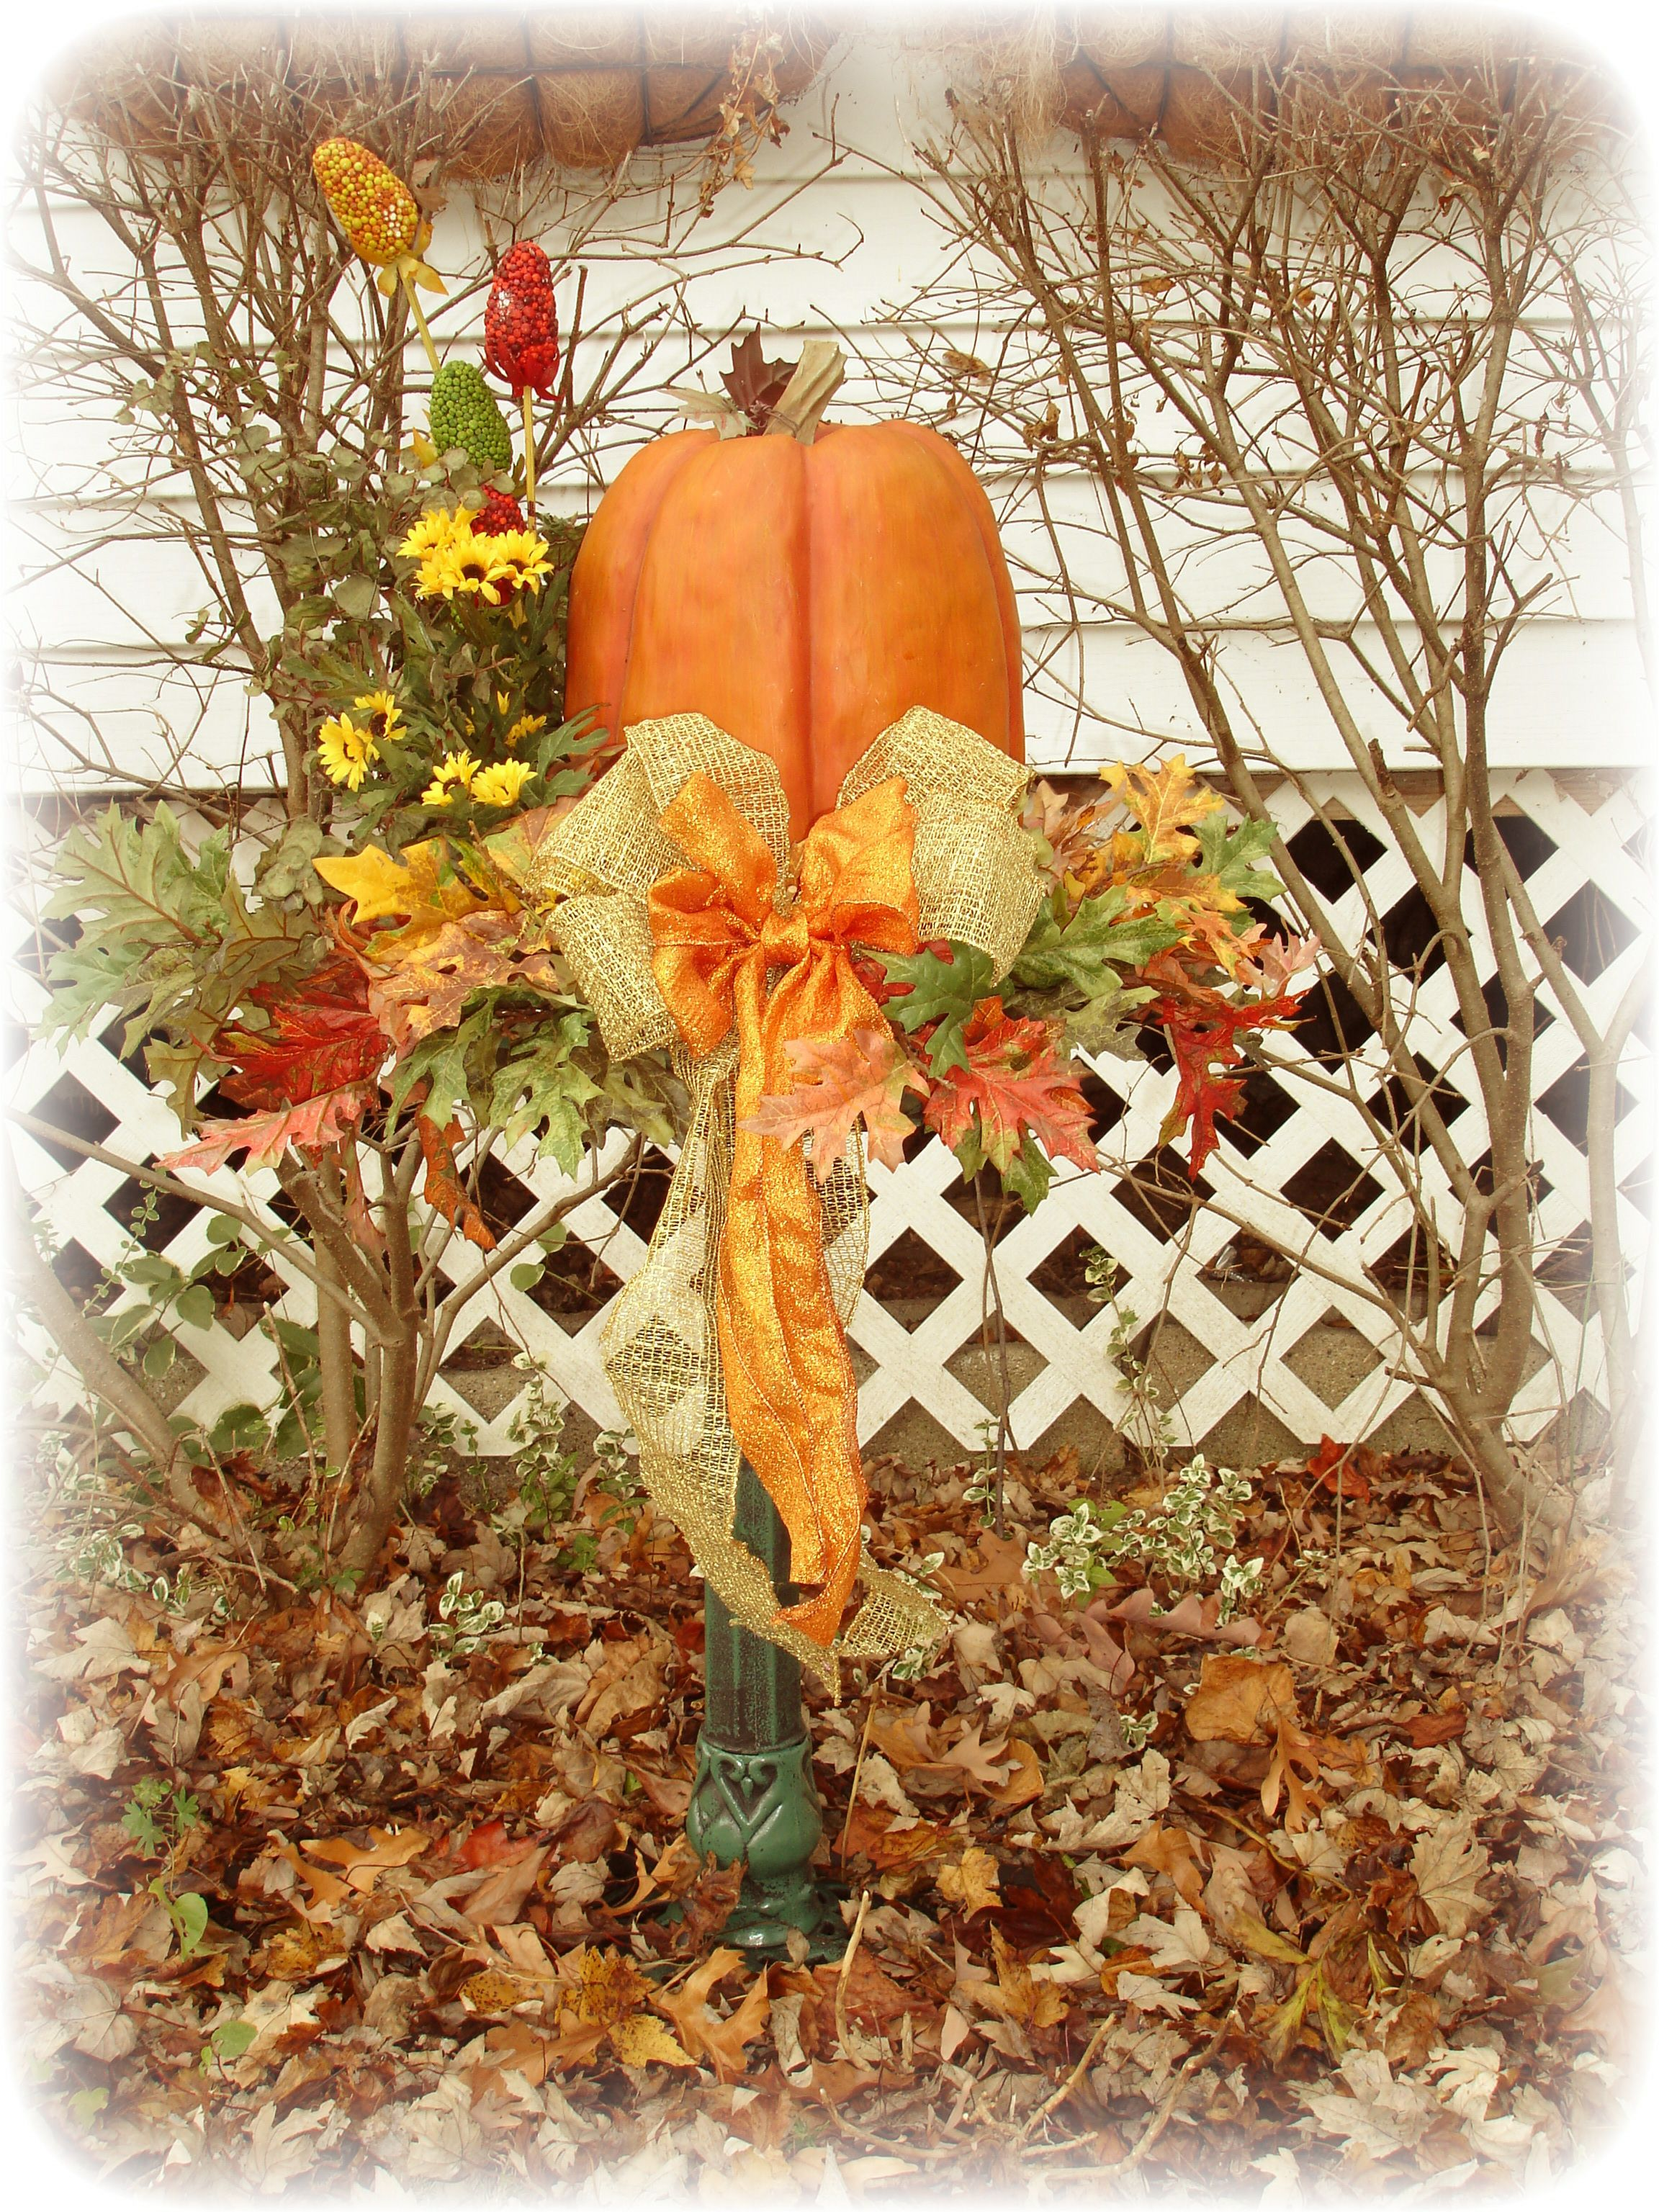 Fall decorating ideas on pinterest - Outside Fall Decorations